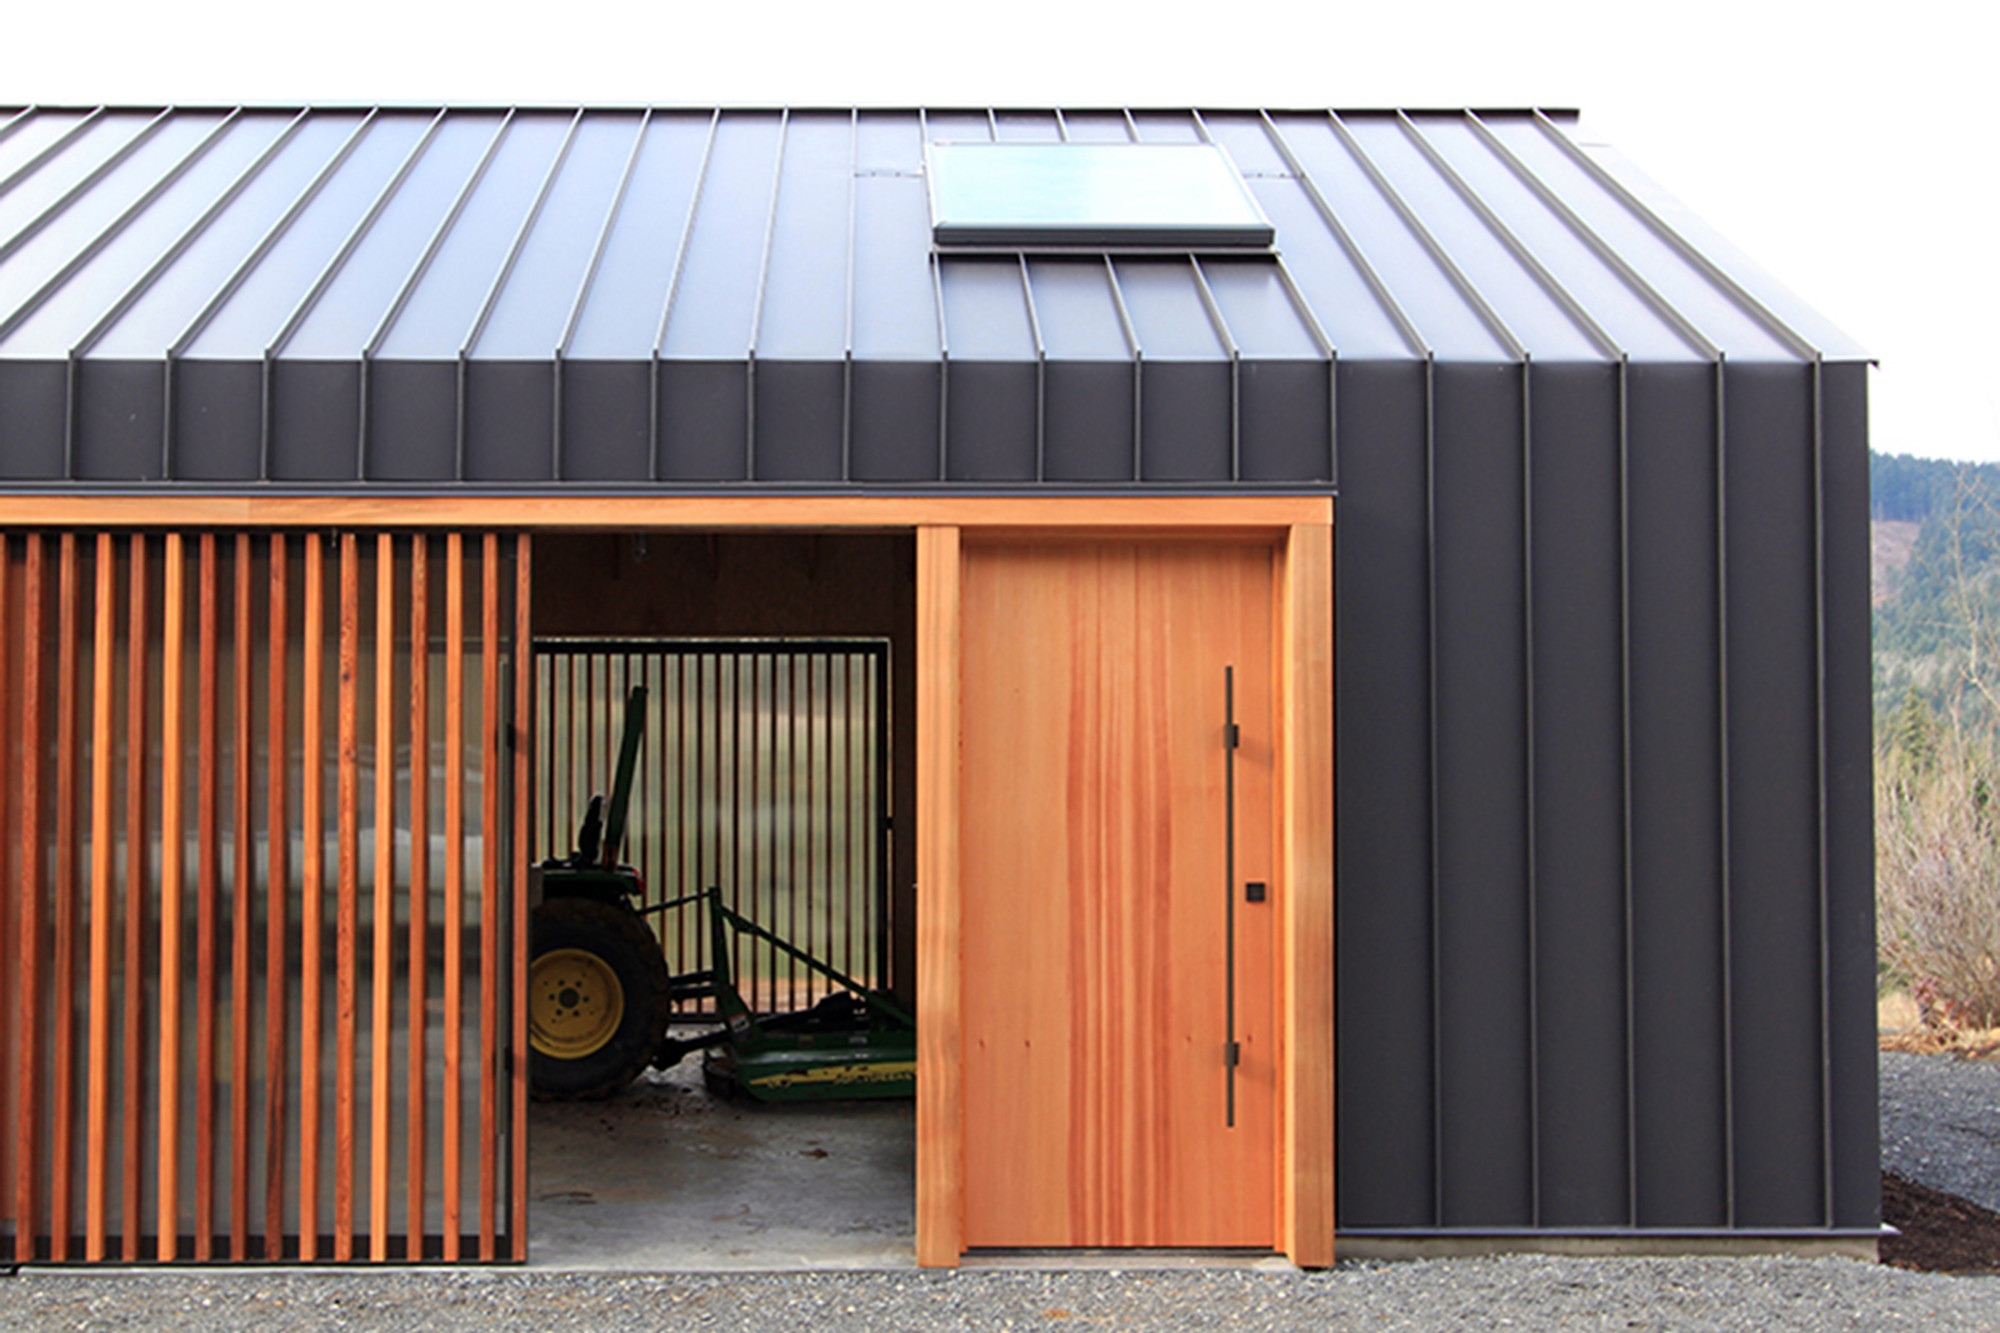 Gallery of elk valley tractor shed fieldwork design for How to build a tractor shed